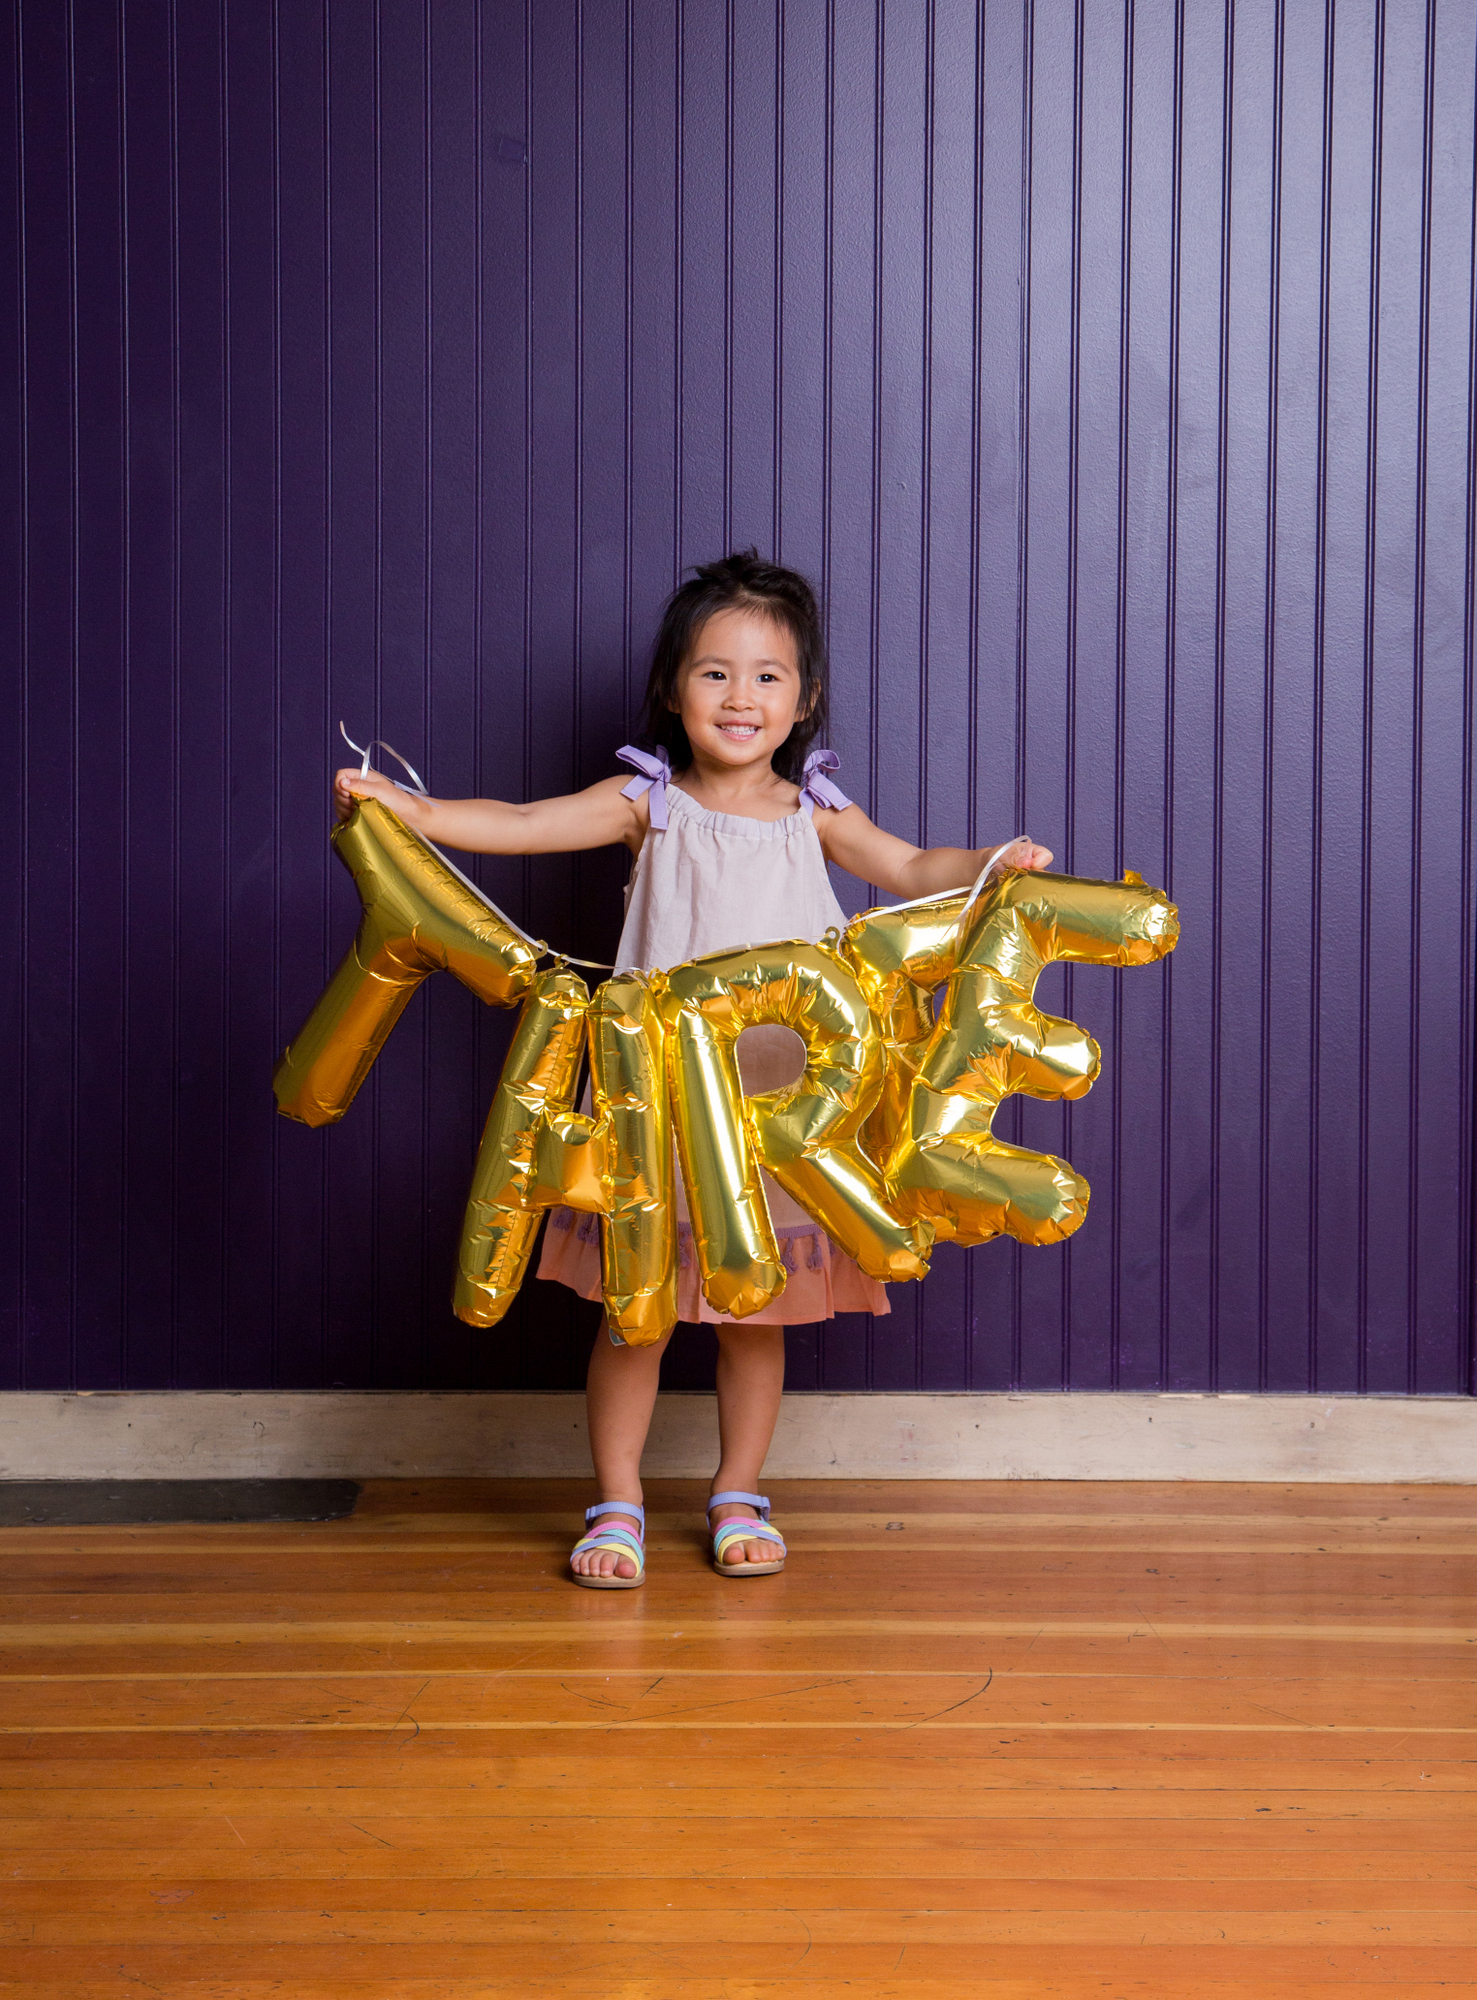 Vivian Turns Three - Her 3 year old Pictures by Utah mom blogger Sandy A La Mode